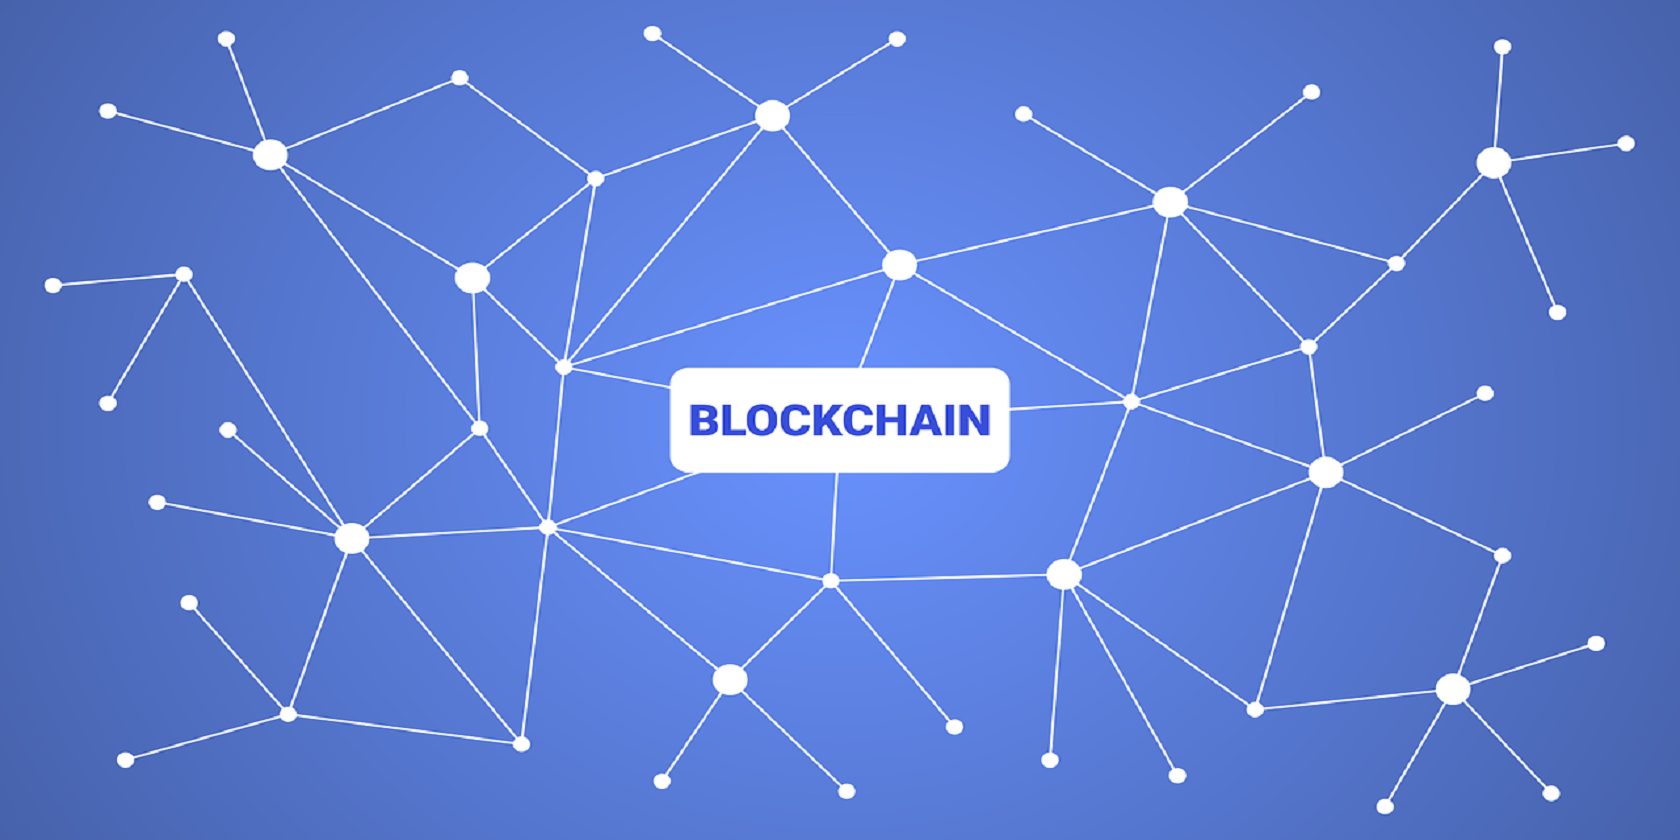 Is It Possible to Hack the Blockchain?